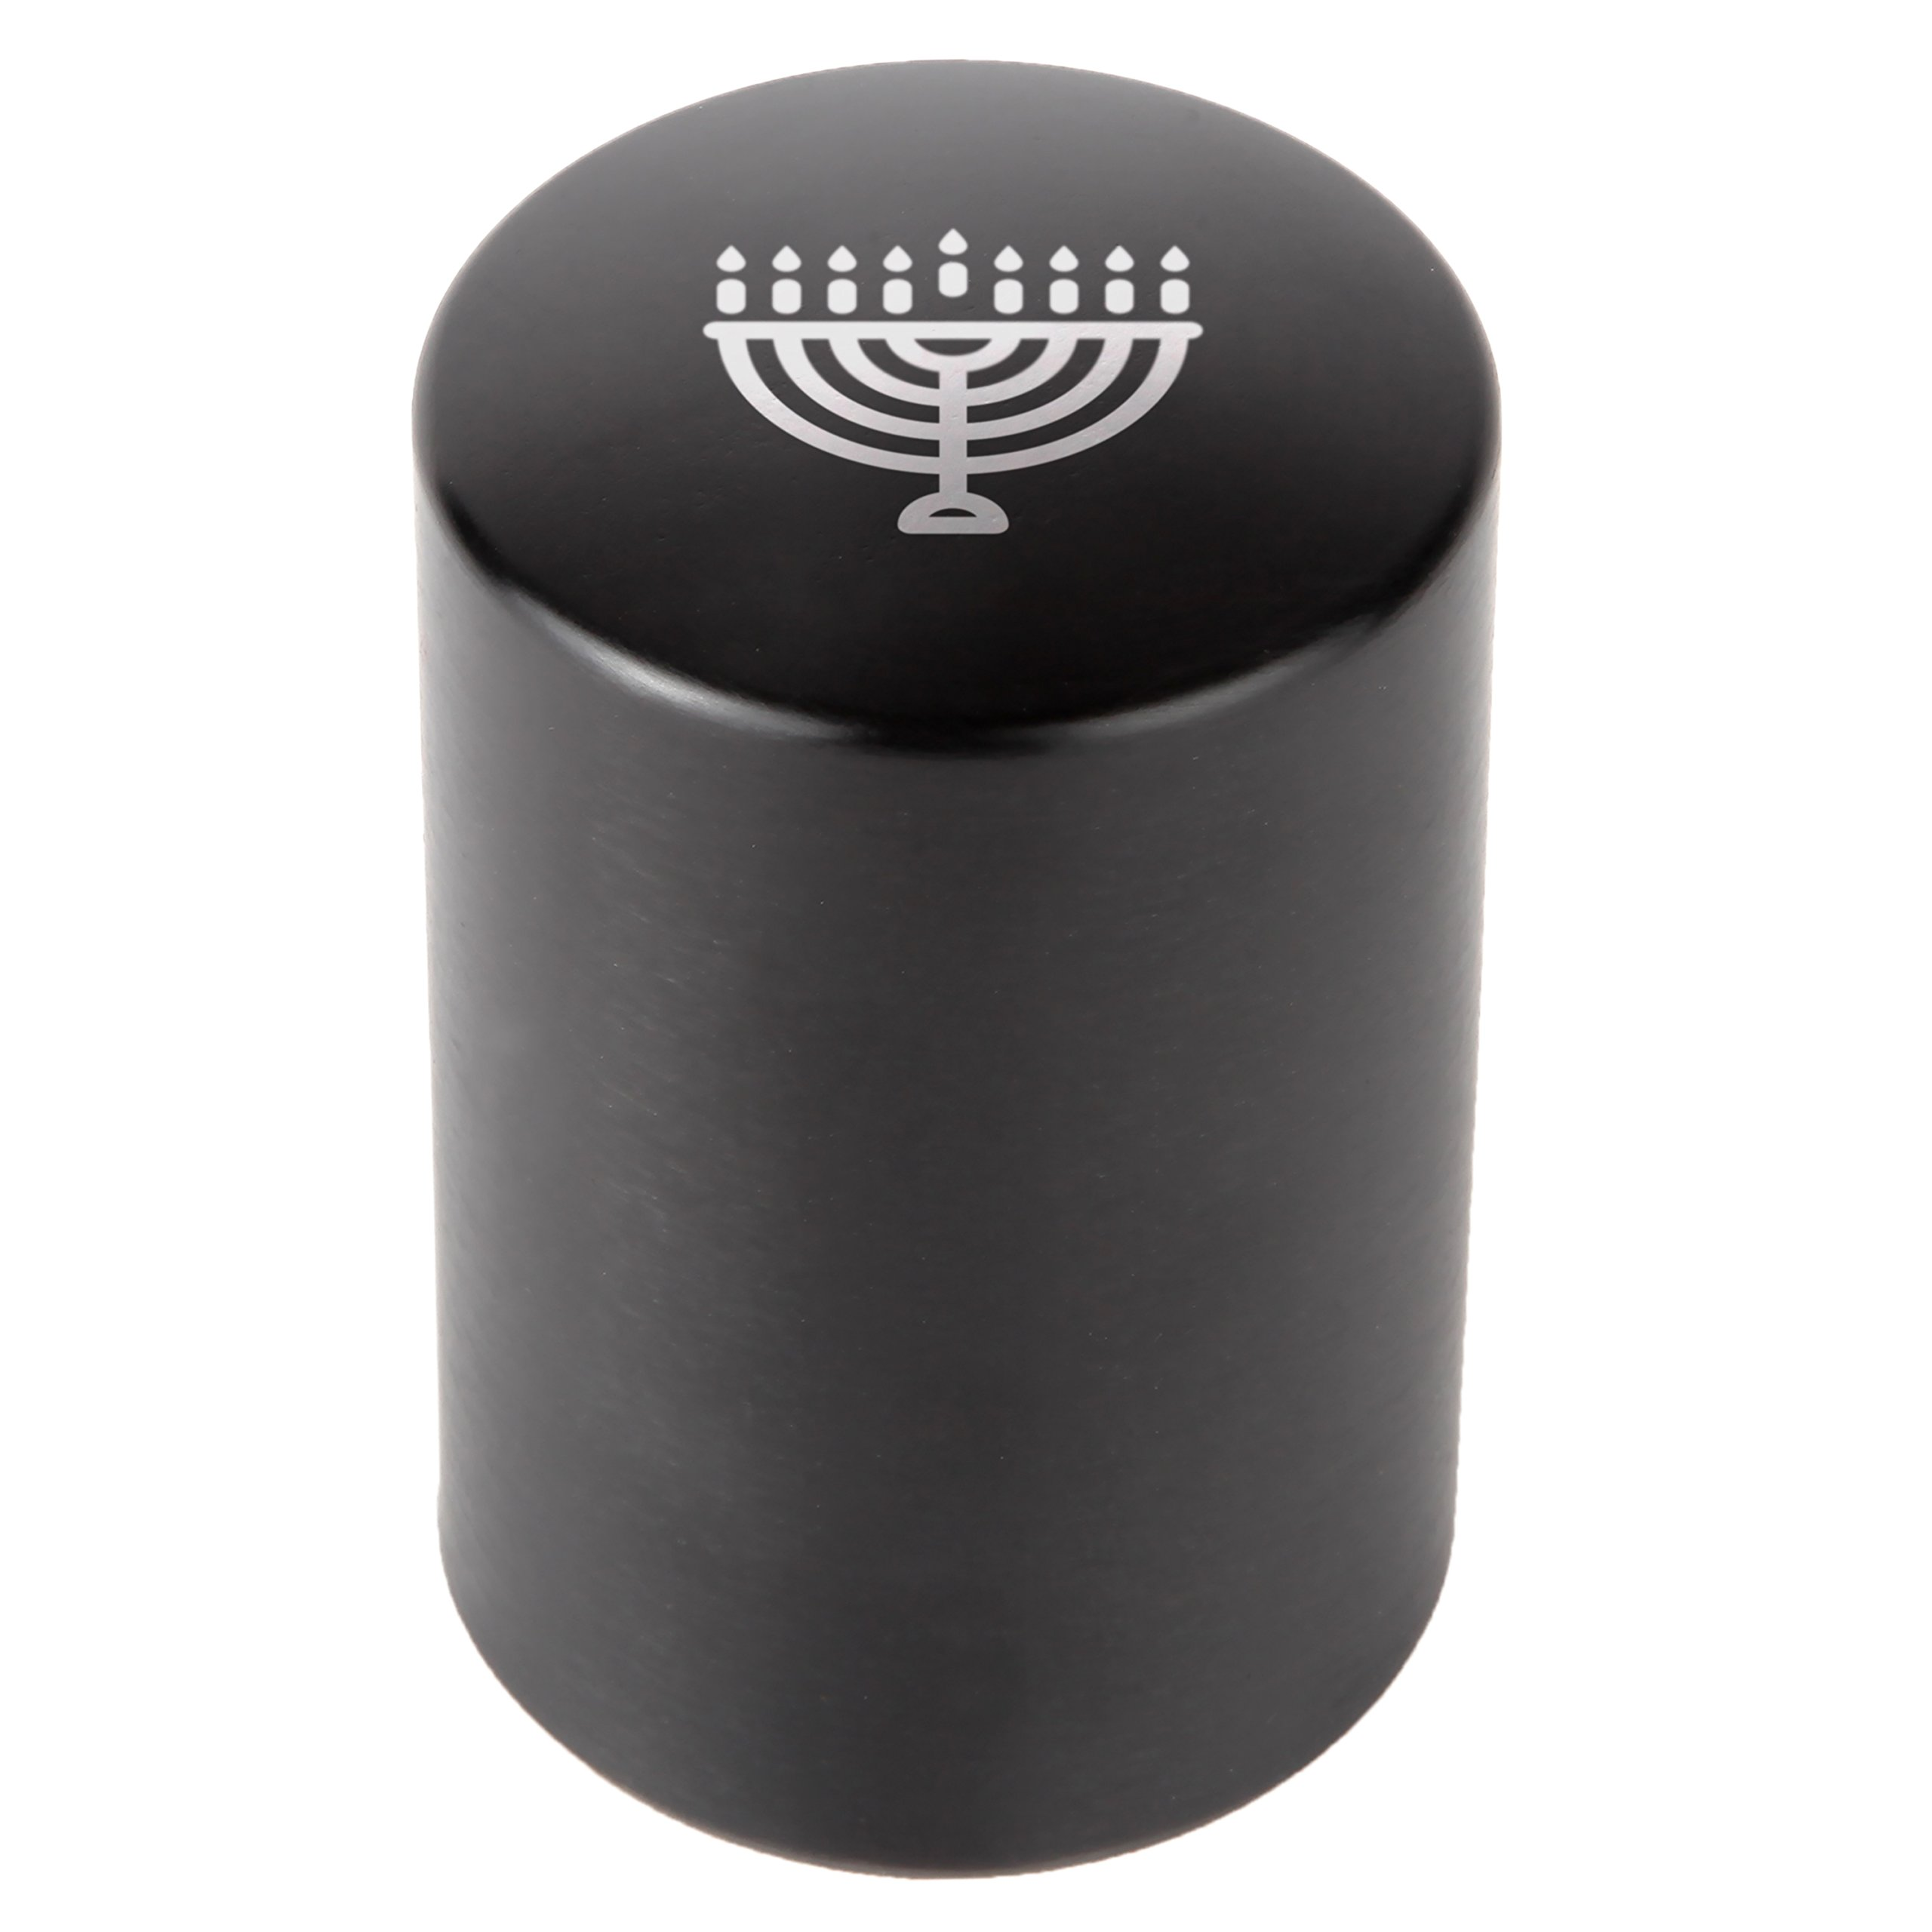 Hanukkah Menorah Automatic Bottle Opener - Laser Etched Design - Bottle Opener With Catcher - Fast Bottle Opener For Parties, Events Or Everyday Use